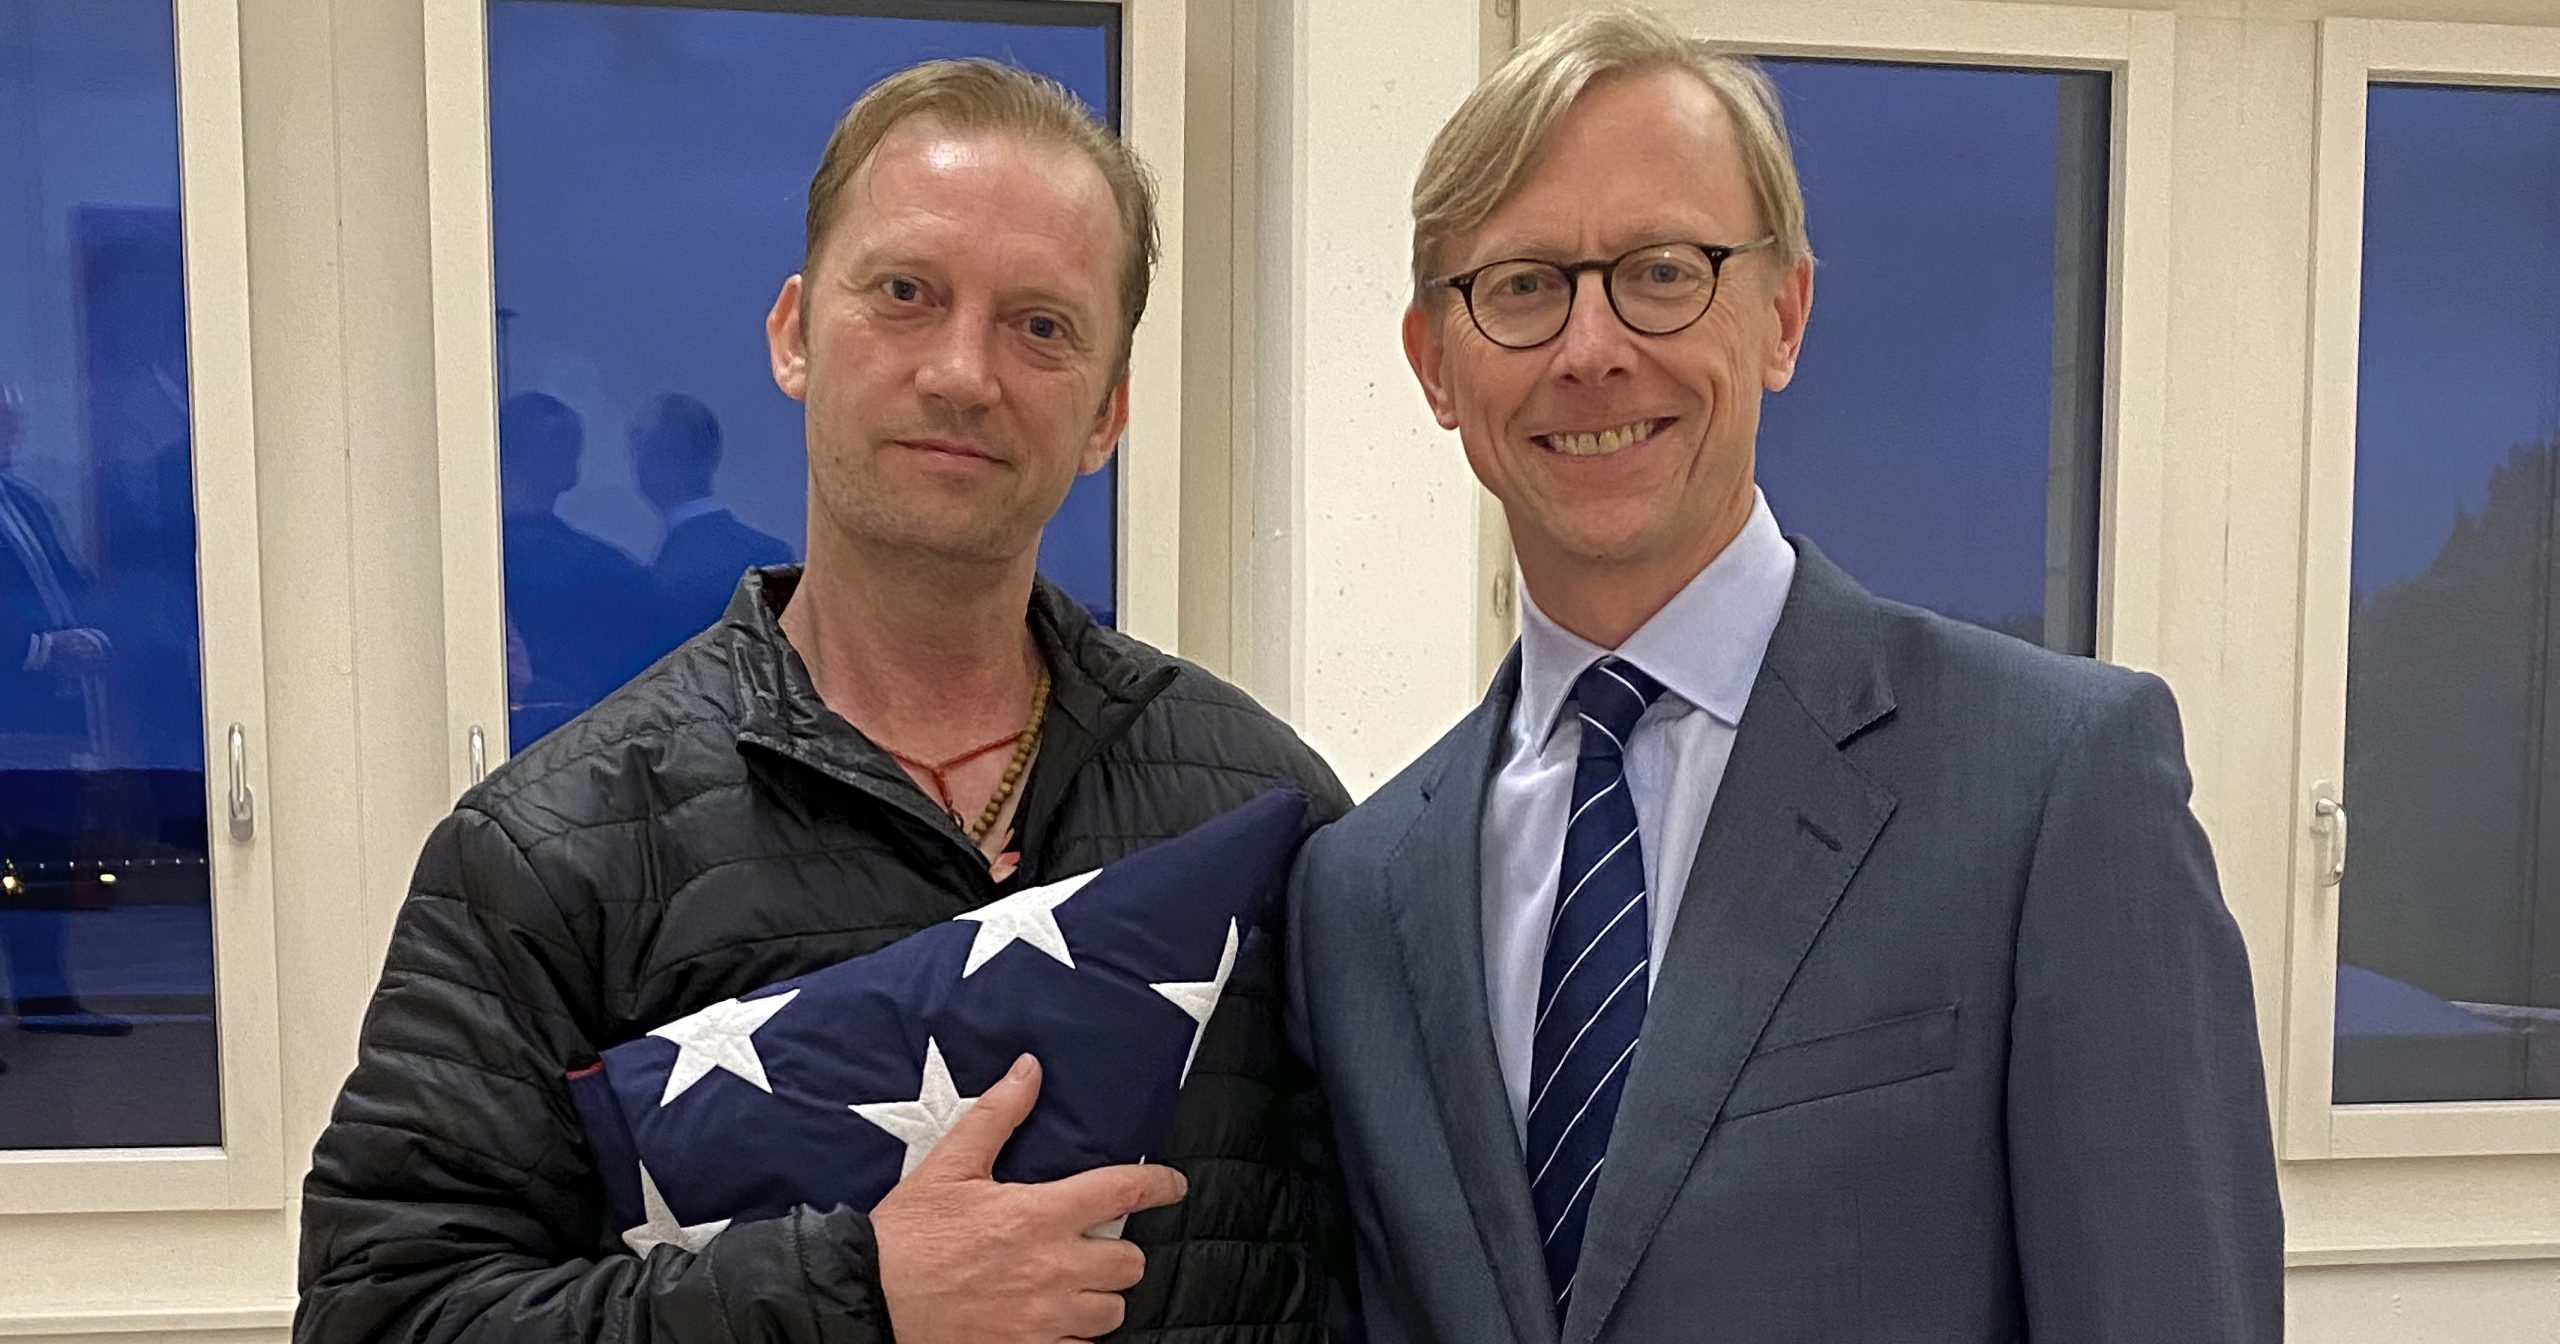 In this image provided by the U.S. State Department, Michael White holds an American flag as he poses for a photo on June 4, 2020, with U.S. special envoy for Iran Brian Hook at the Zurich, Switzerland, airport after White's release from Iran. White, a Navy veteran who's been detained in Iran for nearly two years, has been released and is making his way home.